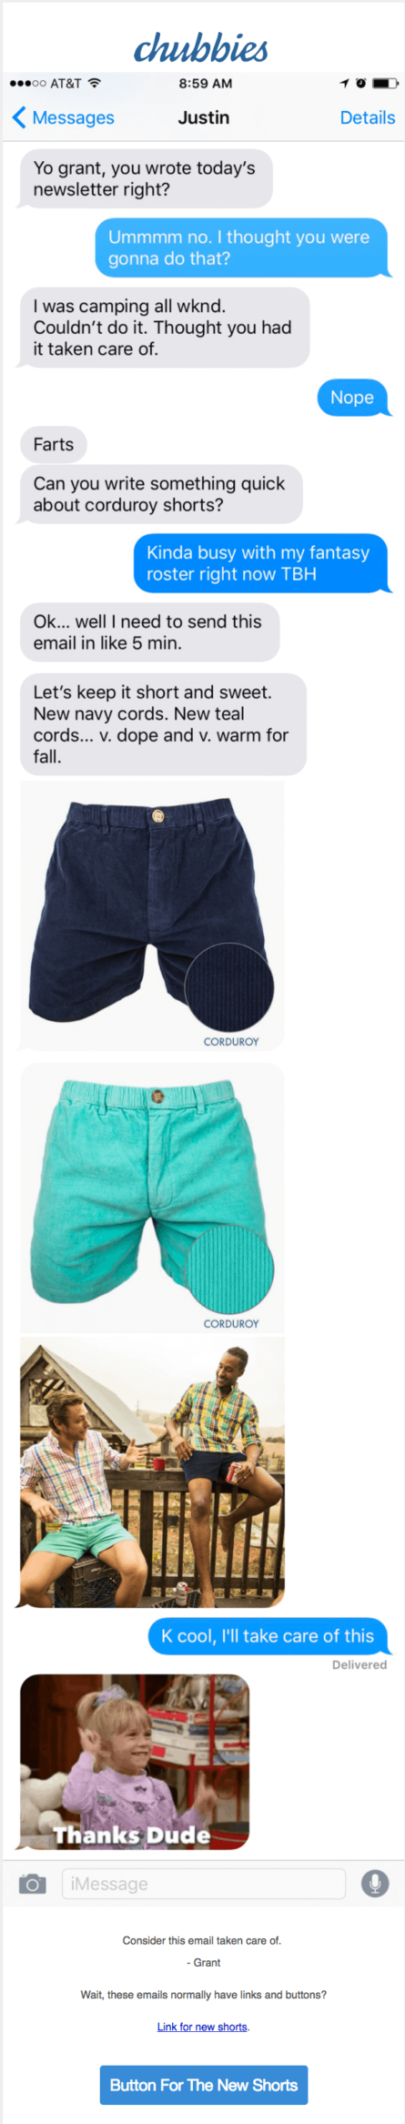 Chubbies Short Email Marketing Example